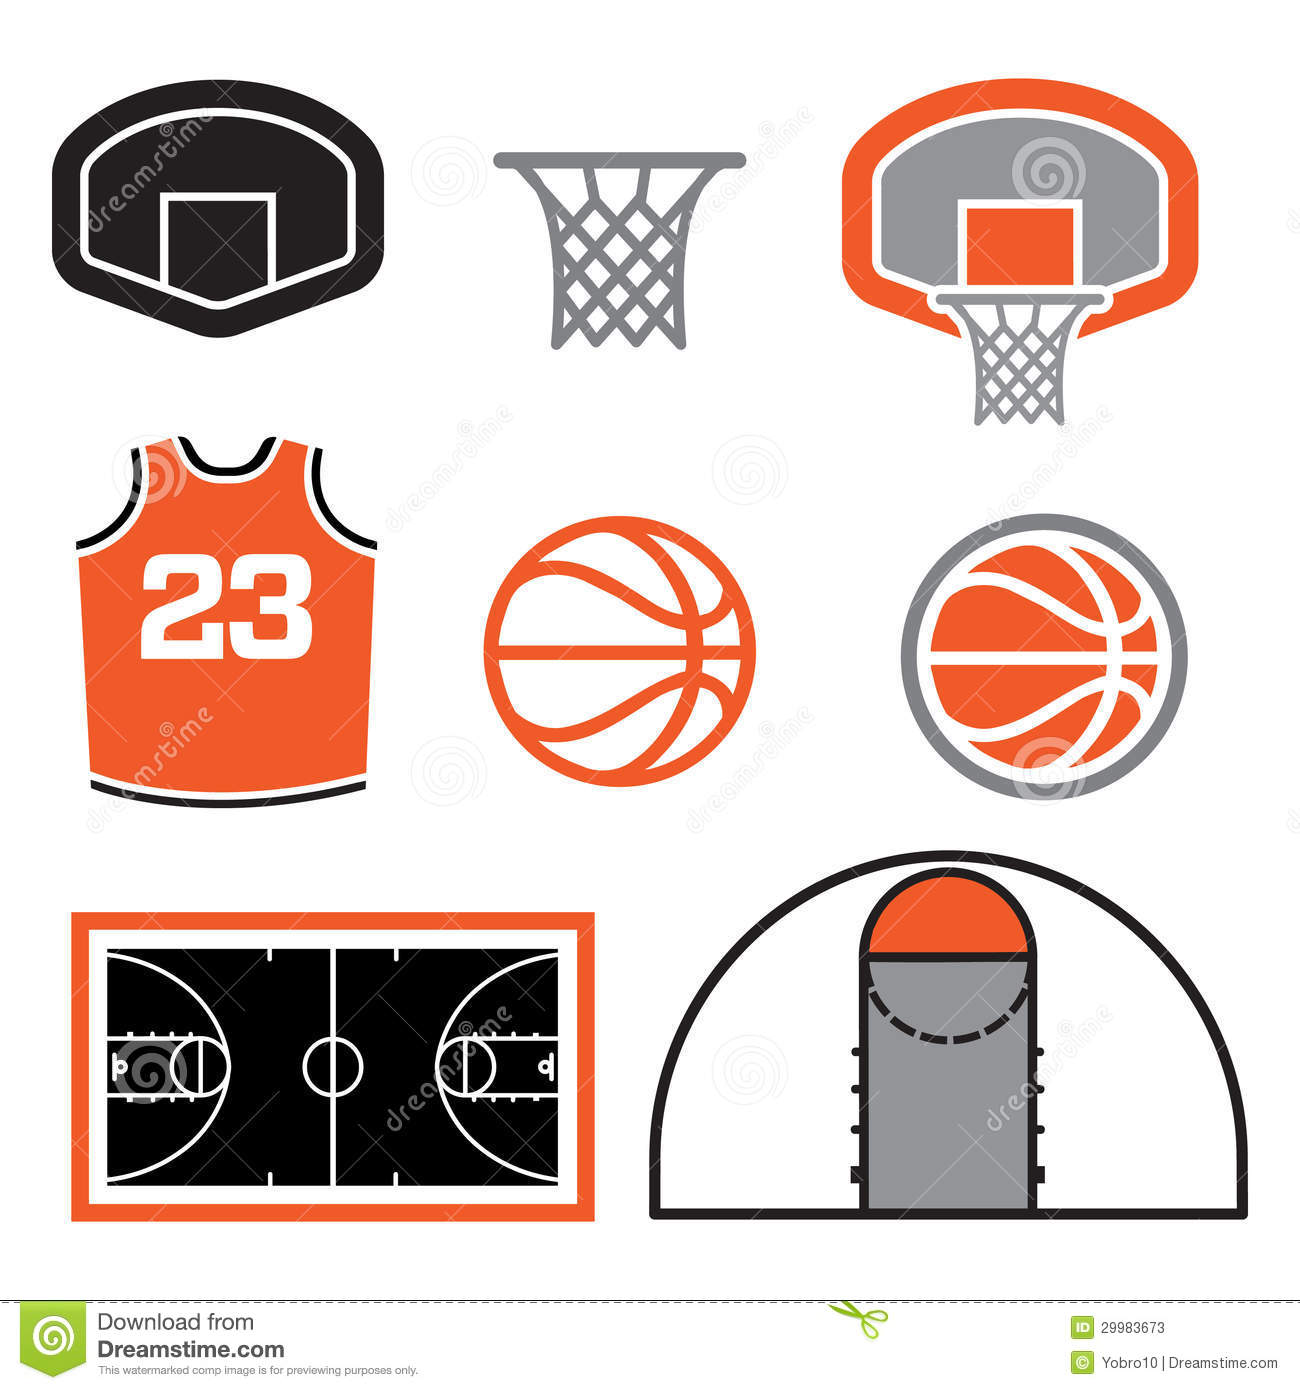 Basketball Elements Illustration Stock Photos.